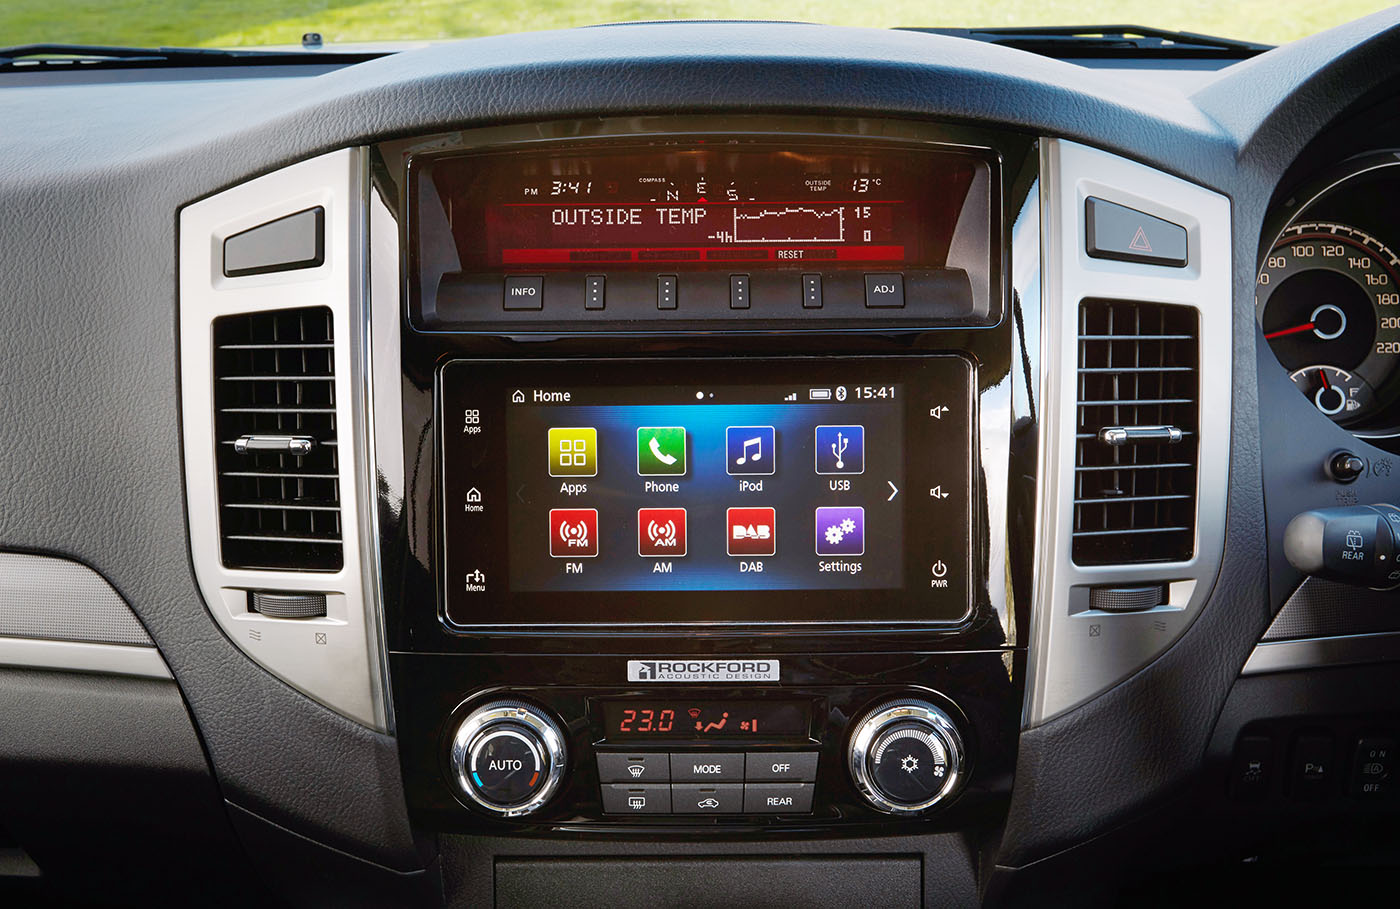 2016 Mitsubishi Pajero drops manual, gains Apple Carplay ...